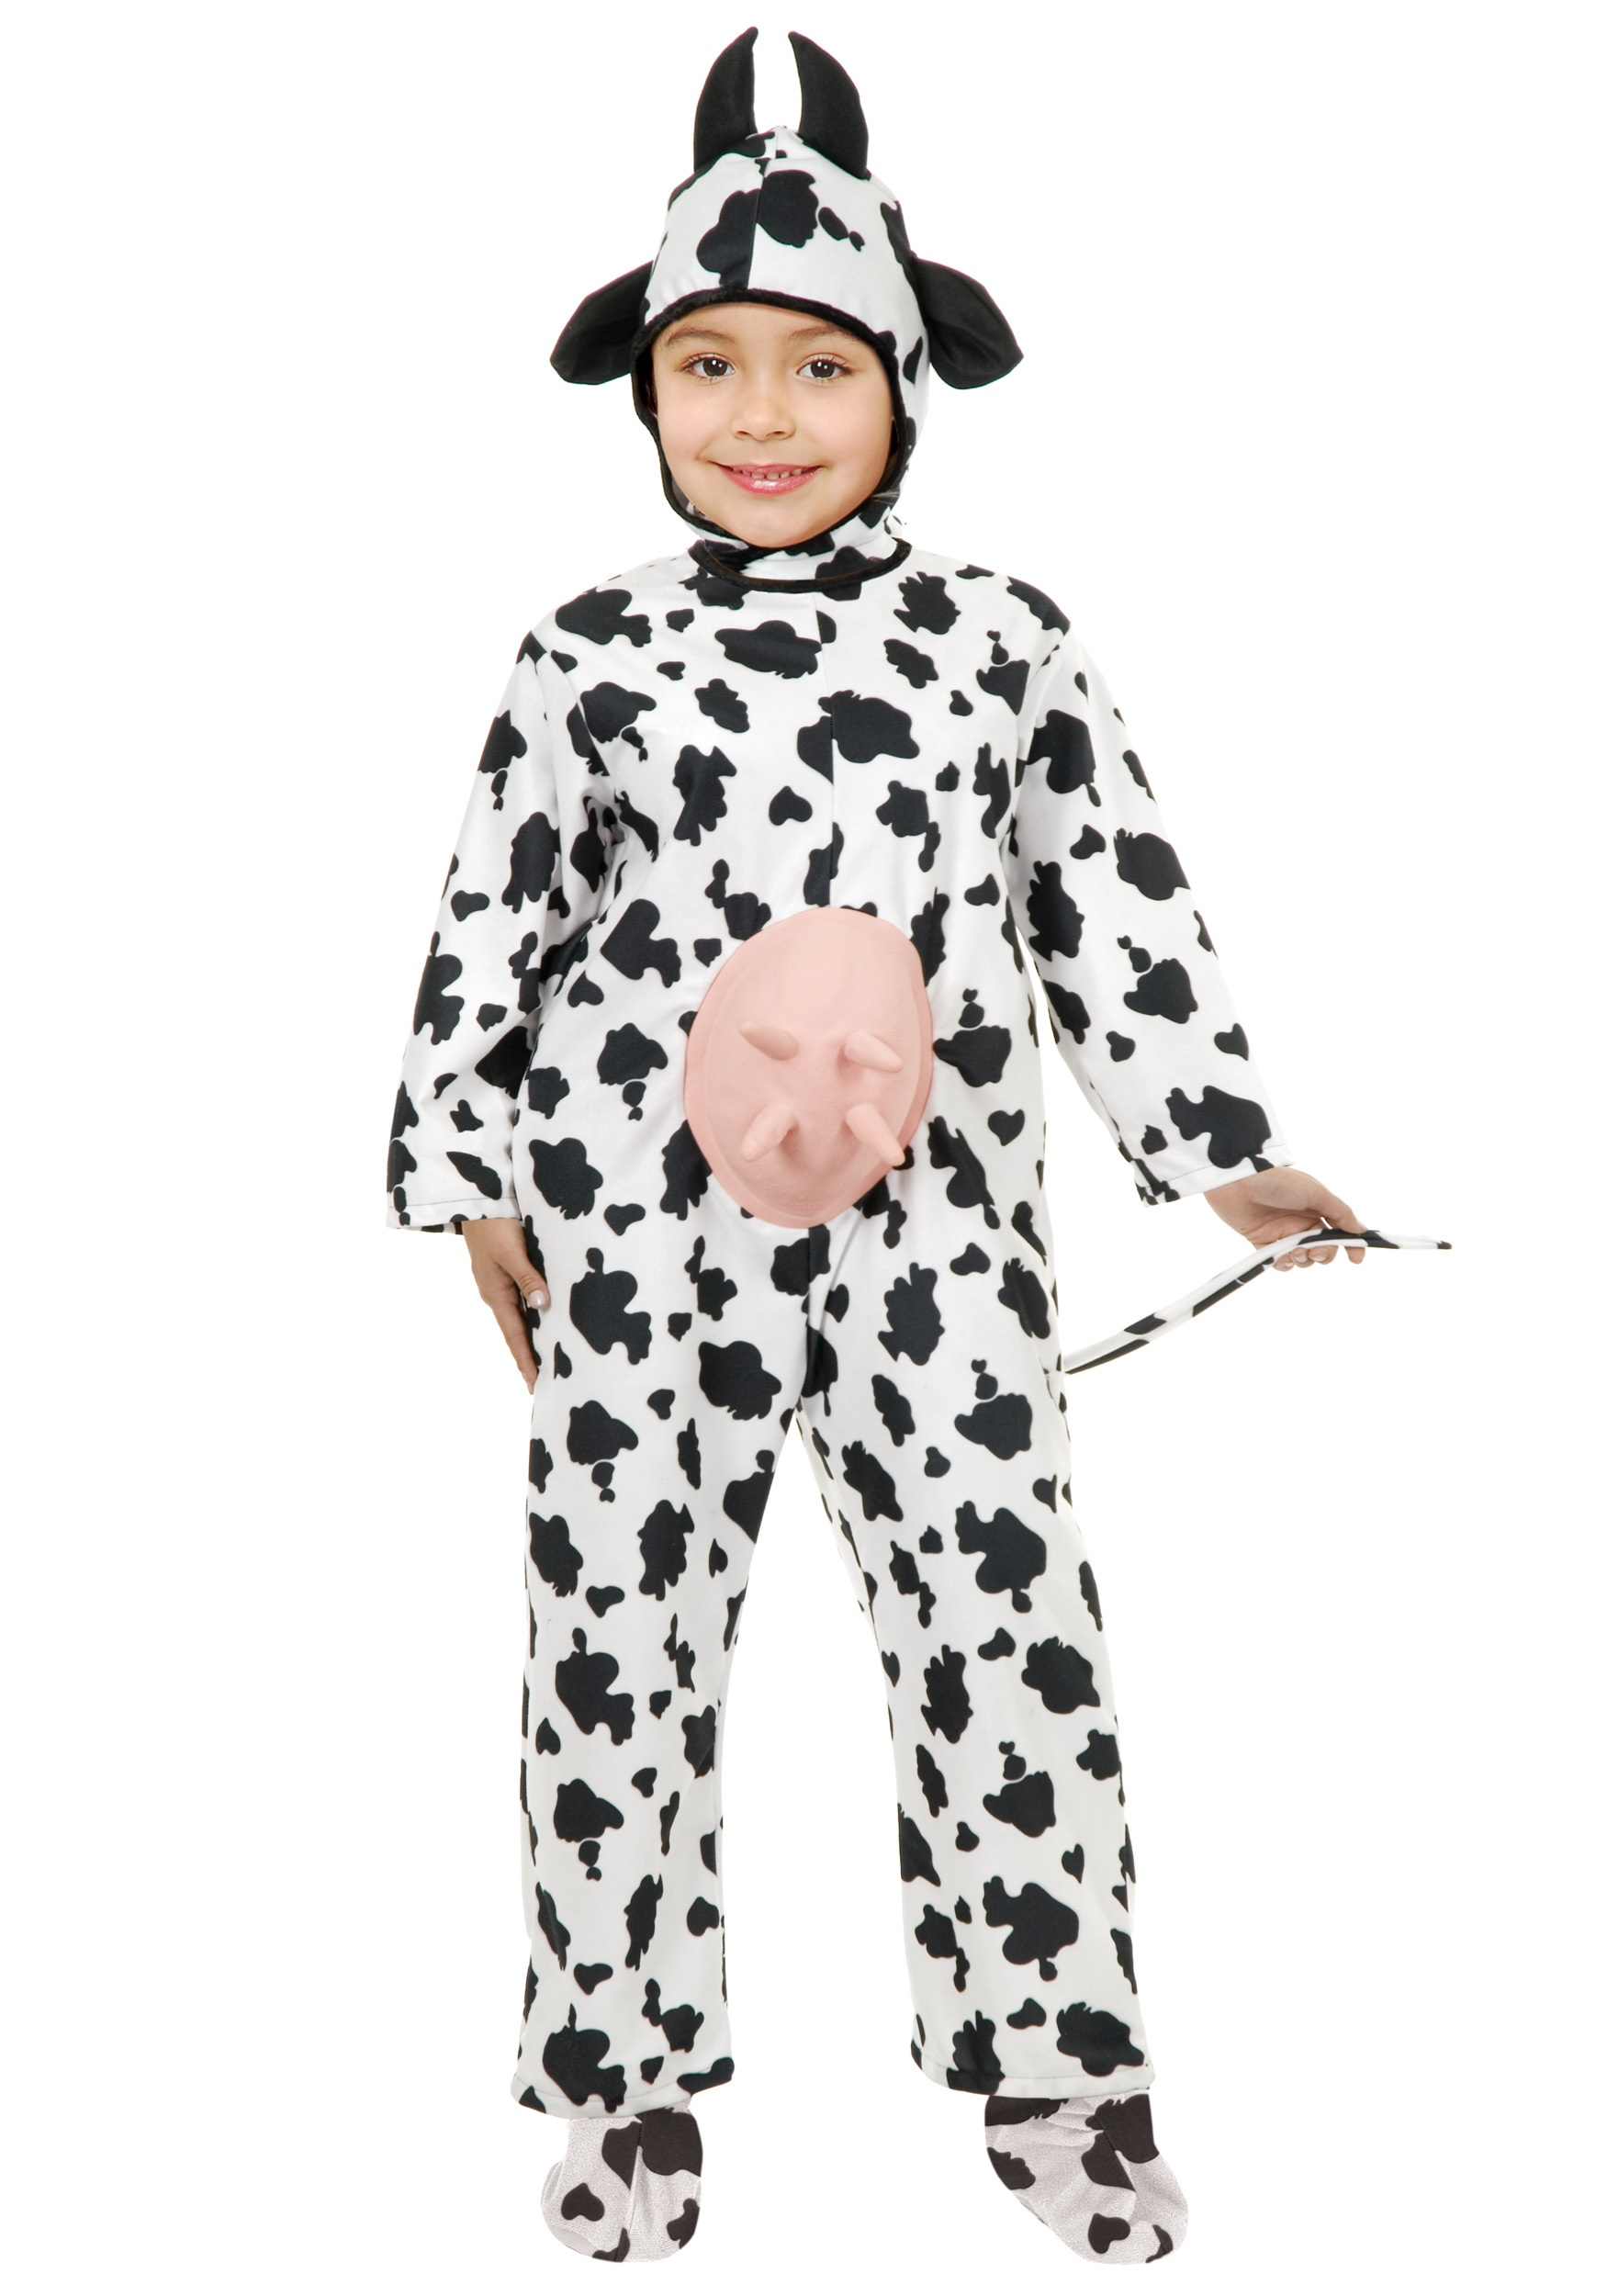 Child Cow with Udder Costume  sc 1 st  Halloween Costumes & Child Cow with Udder Costume - Halloween Costumes